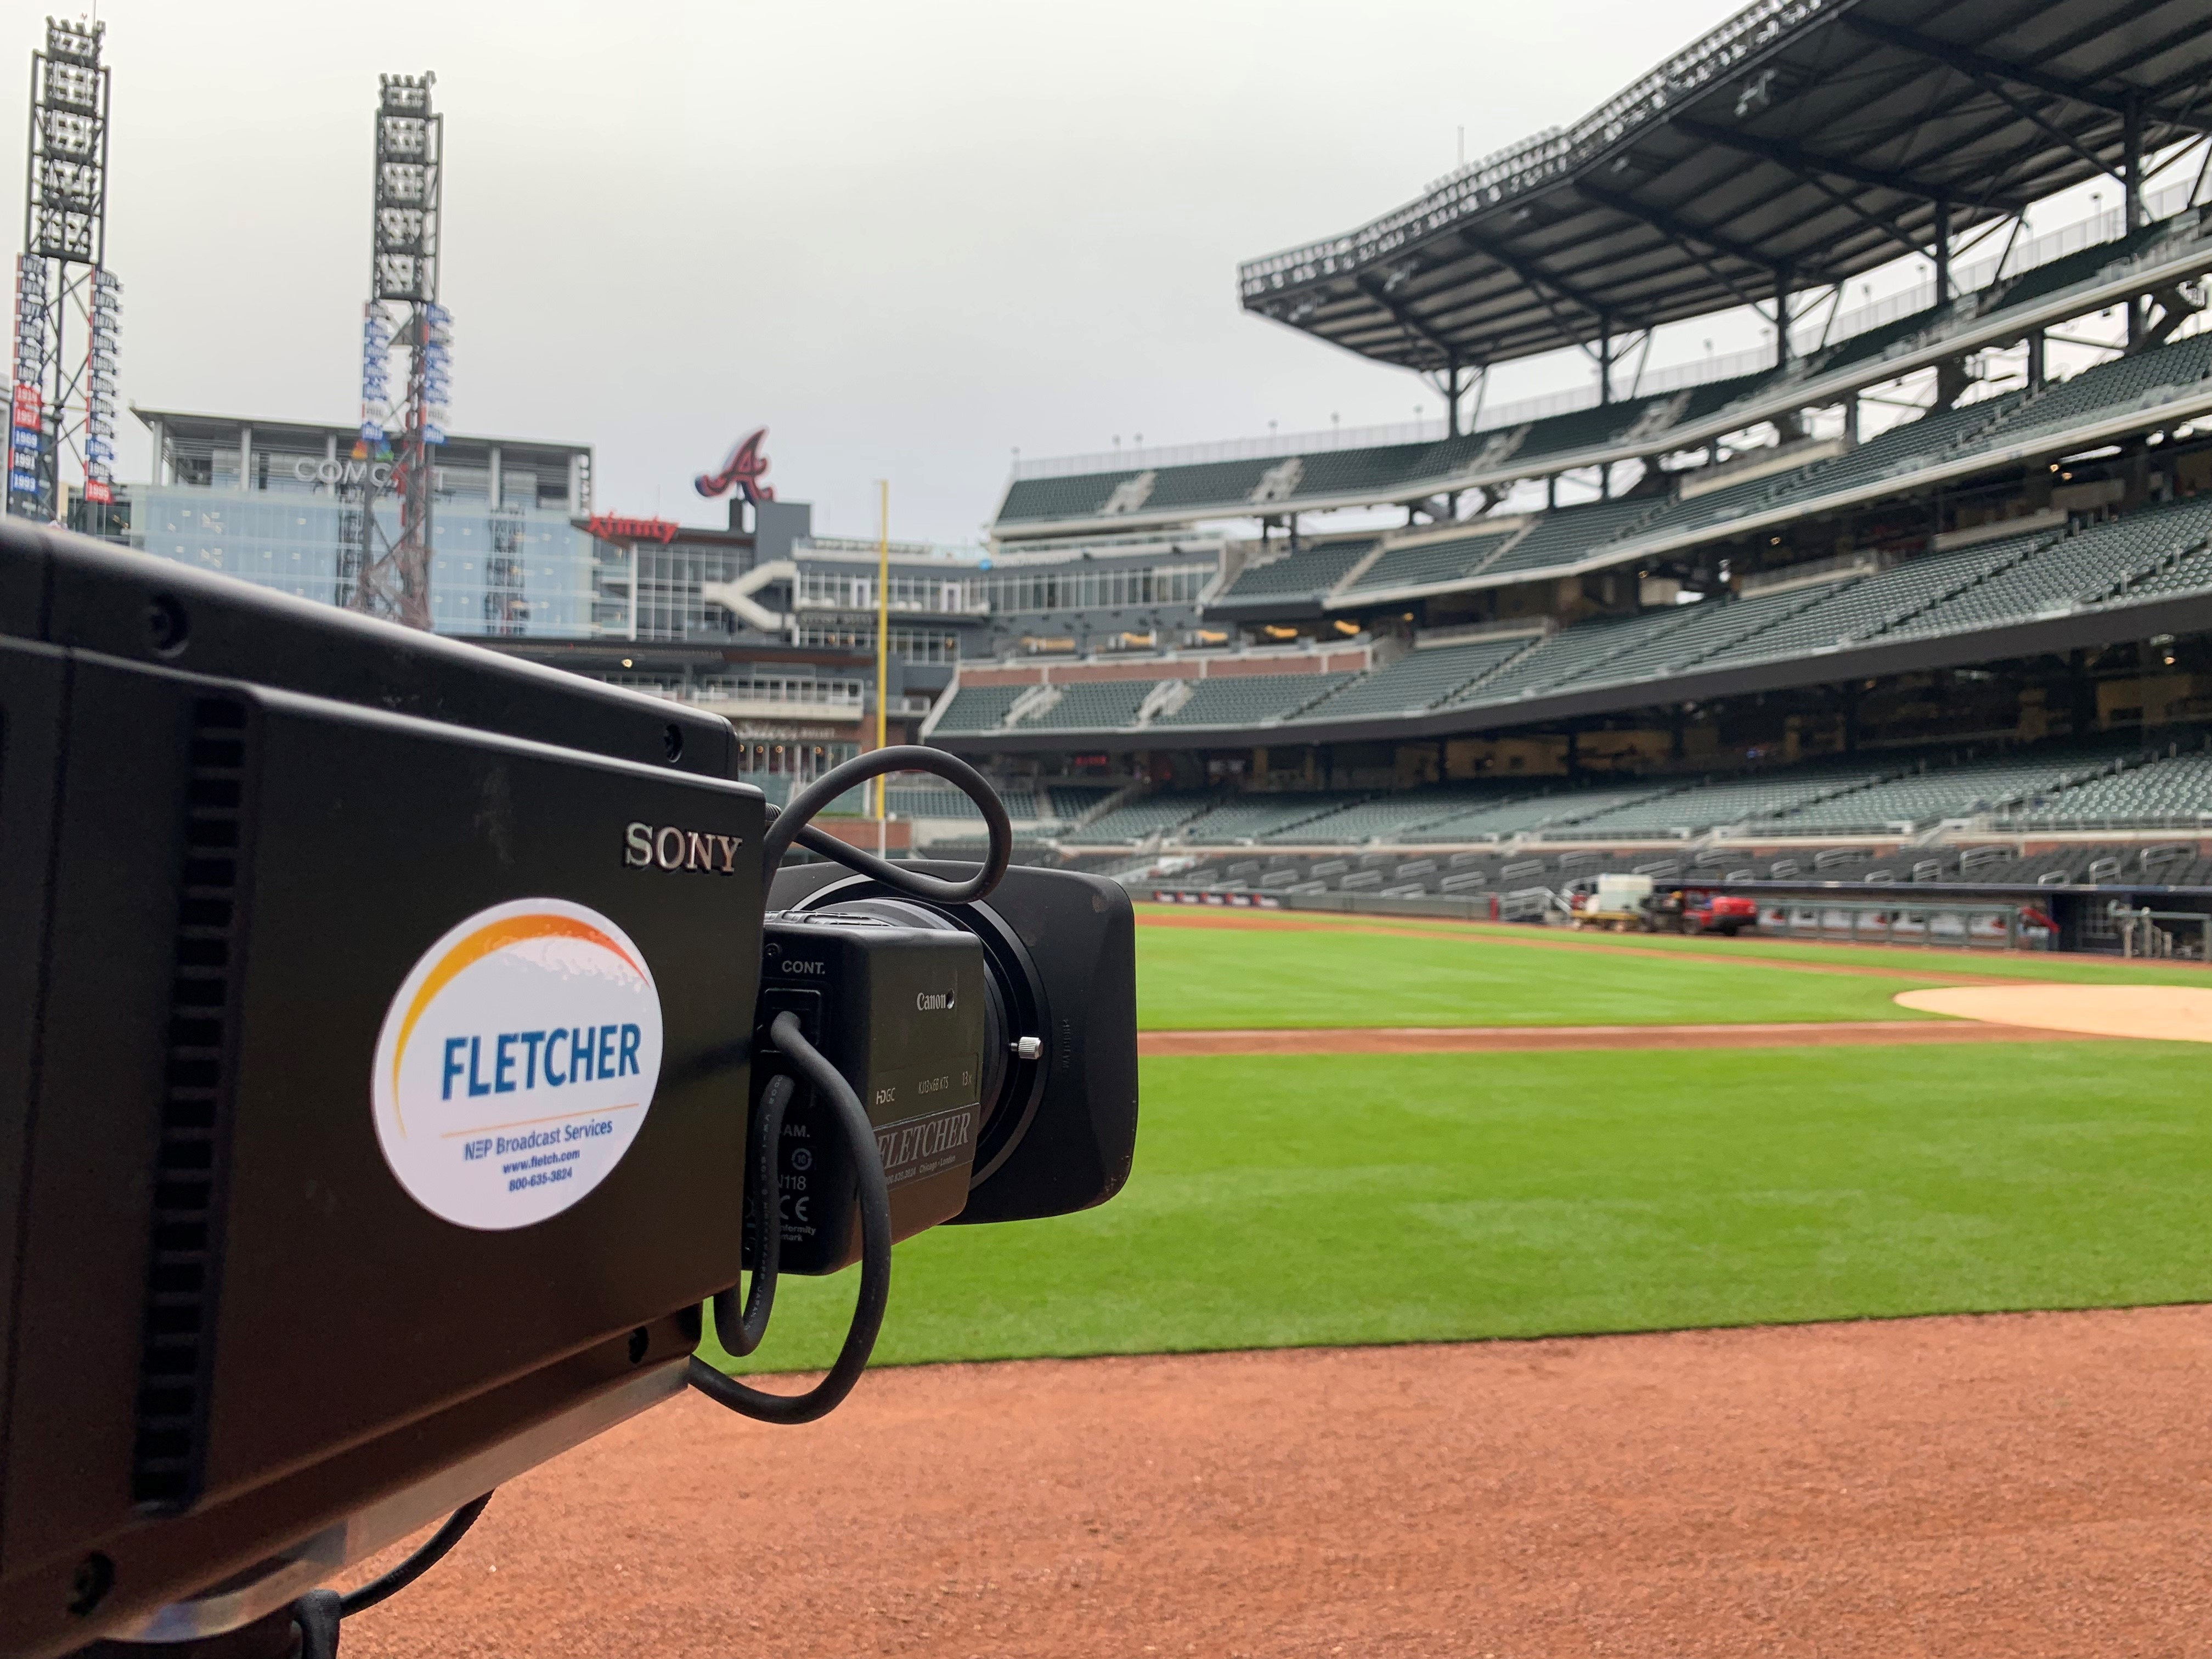 Fletcher Offers a Front Row View with Sony's Compact HDC-P50 4K/HD POV System Camera